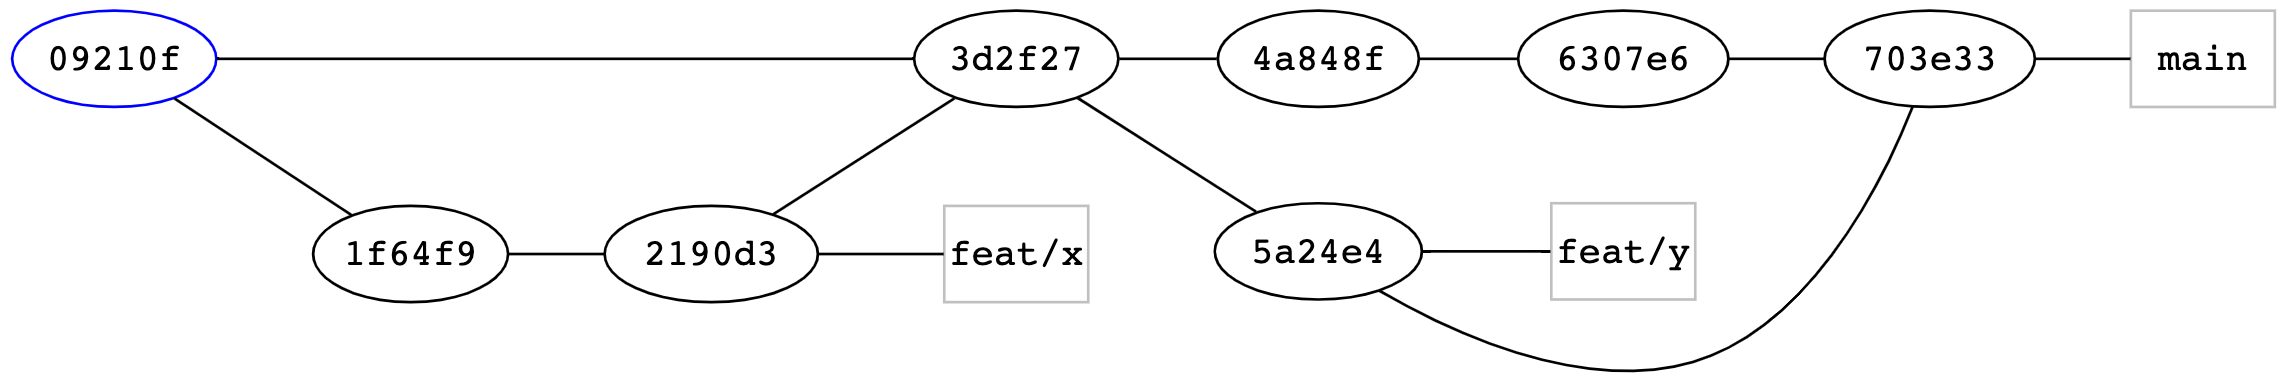 Sample commit graph